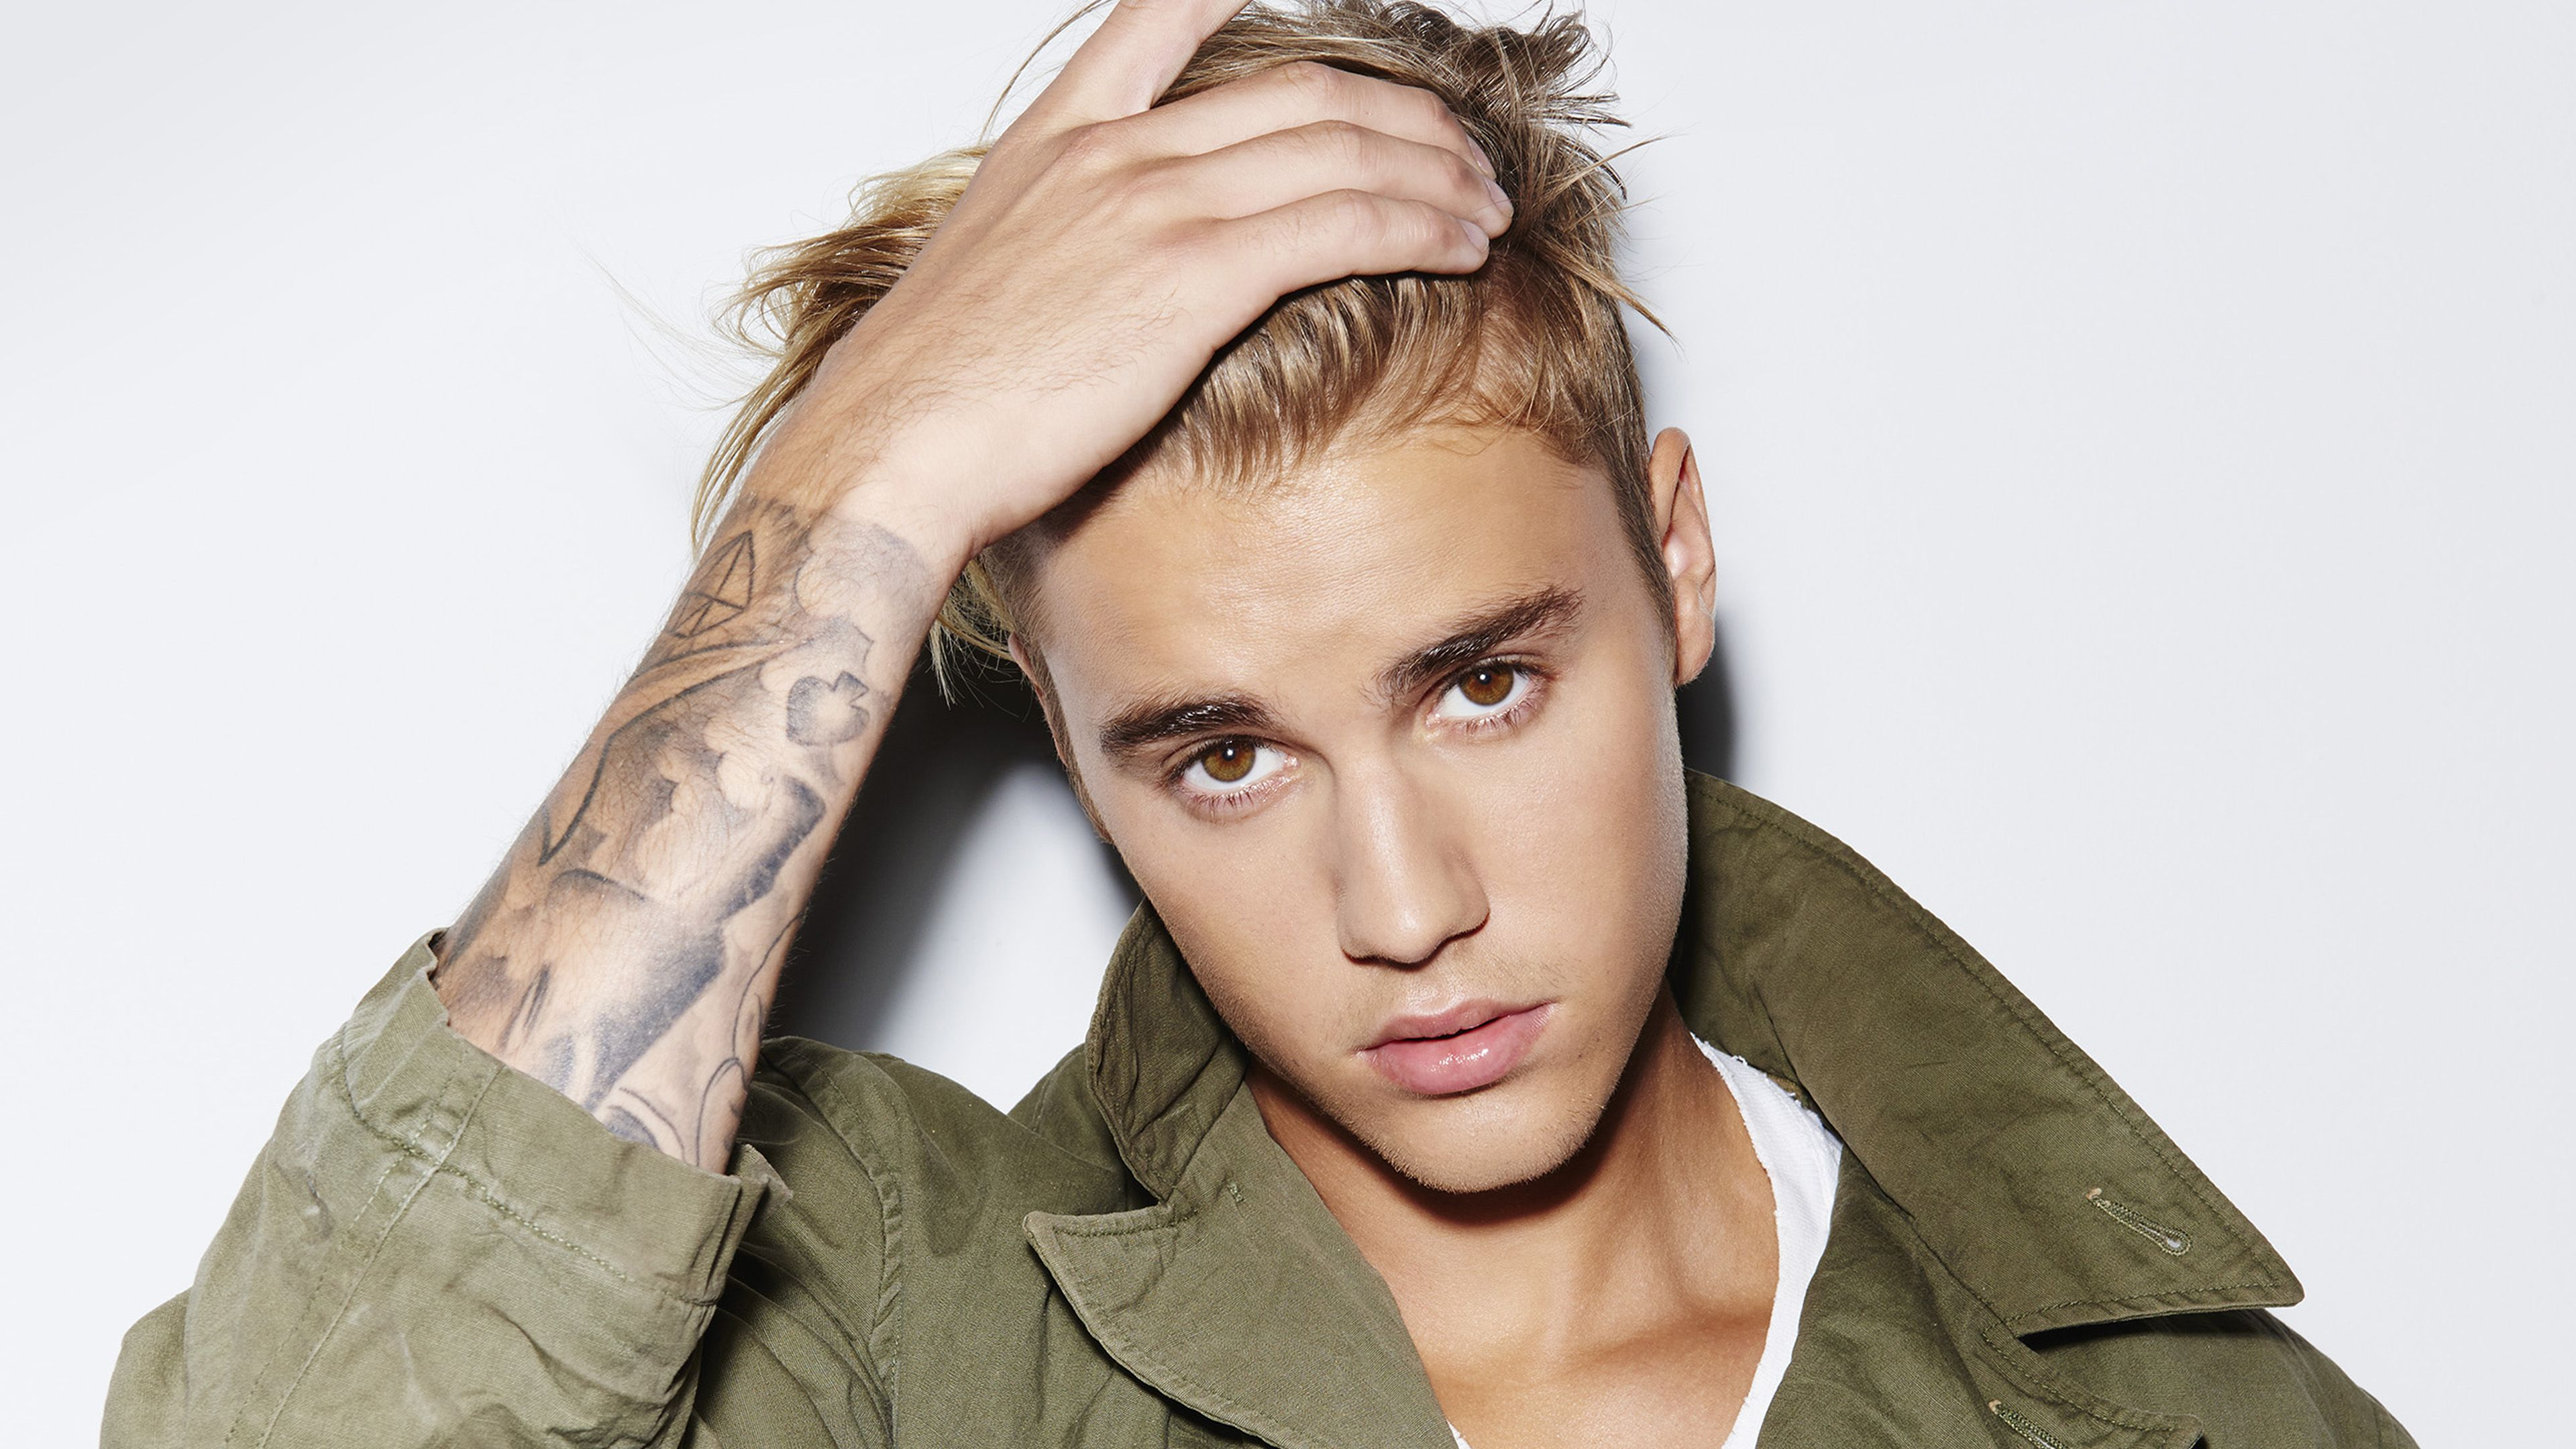 47 Justin Bieber HD Wallpapers | Backgrounds - Wallpaper Abyss